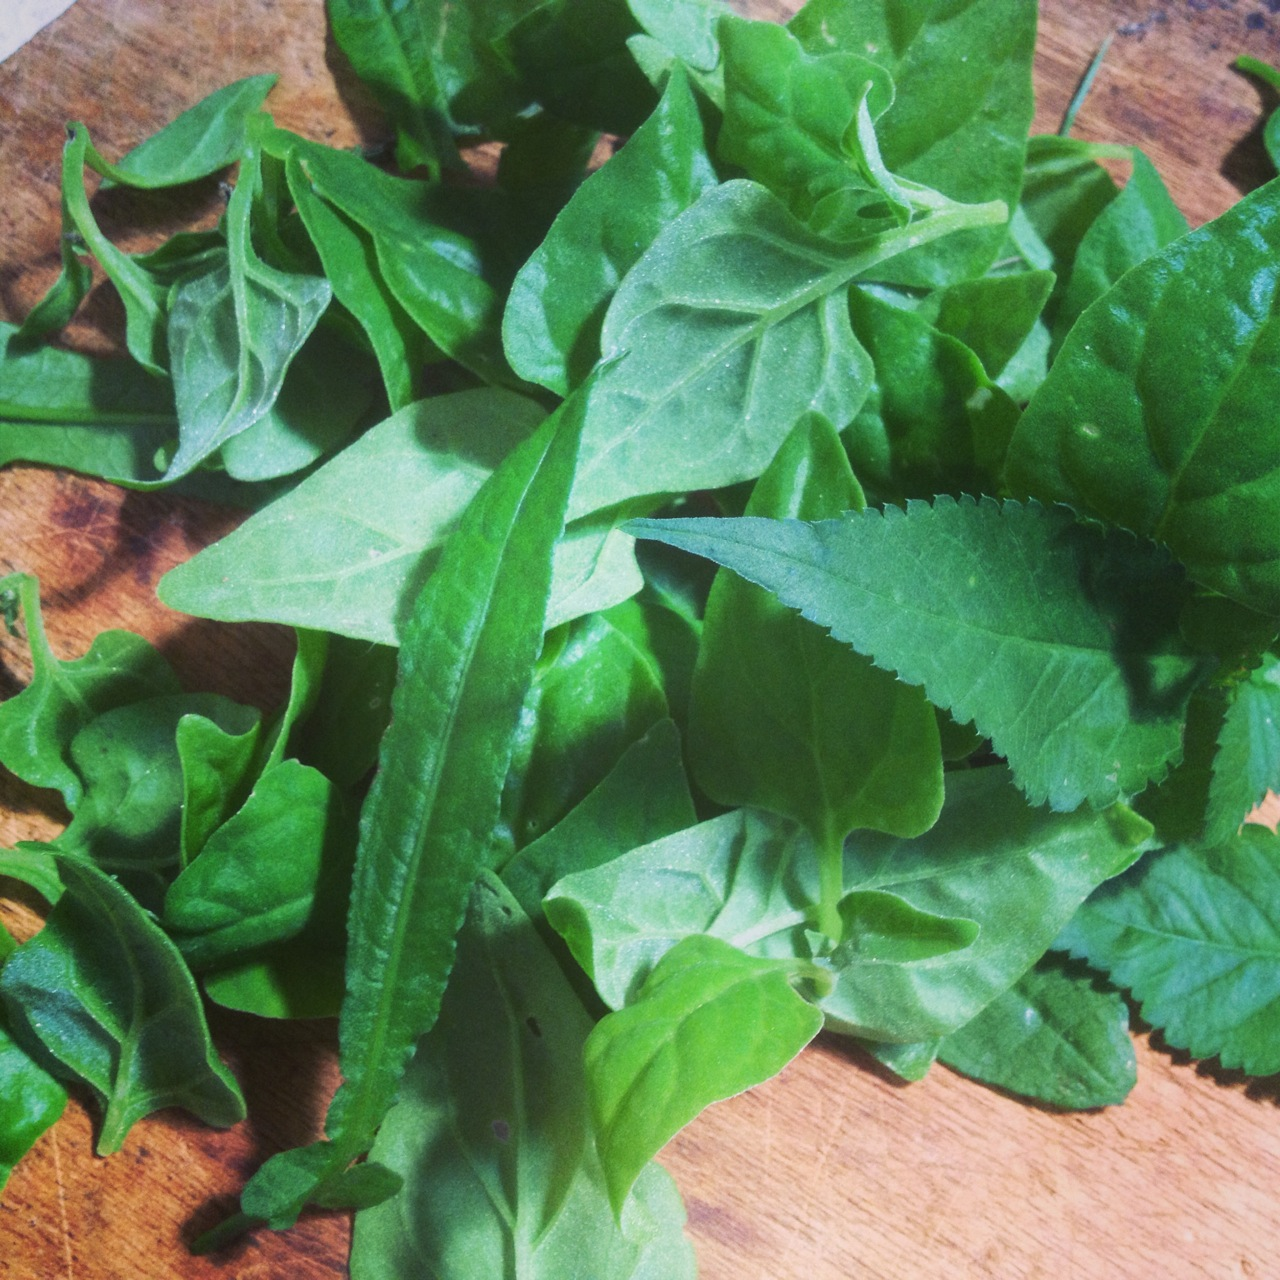 Winter weeds (warrigal greens, cobblers pegs, dock) with scrambled eggs to help the lurgy pass